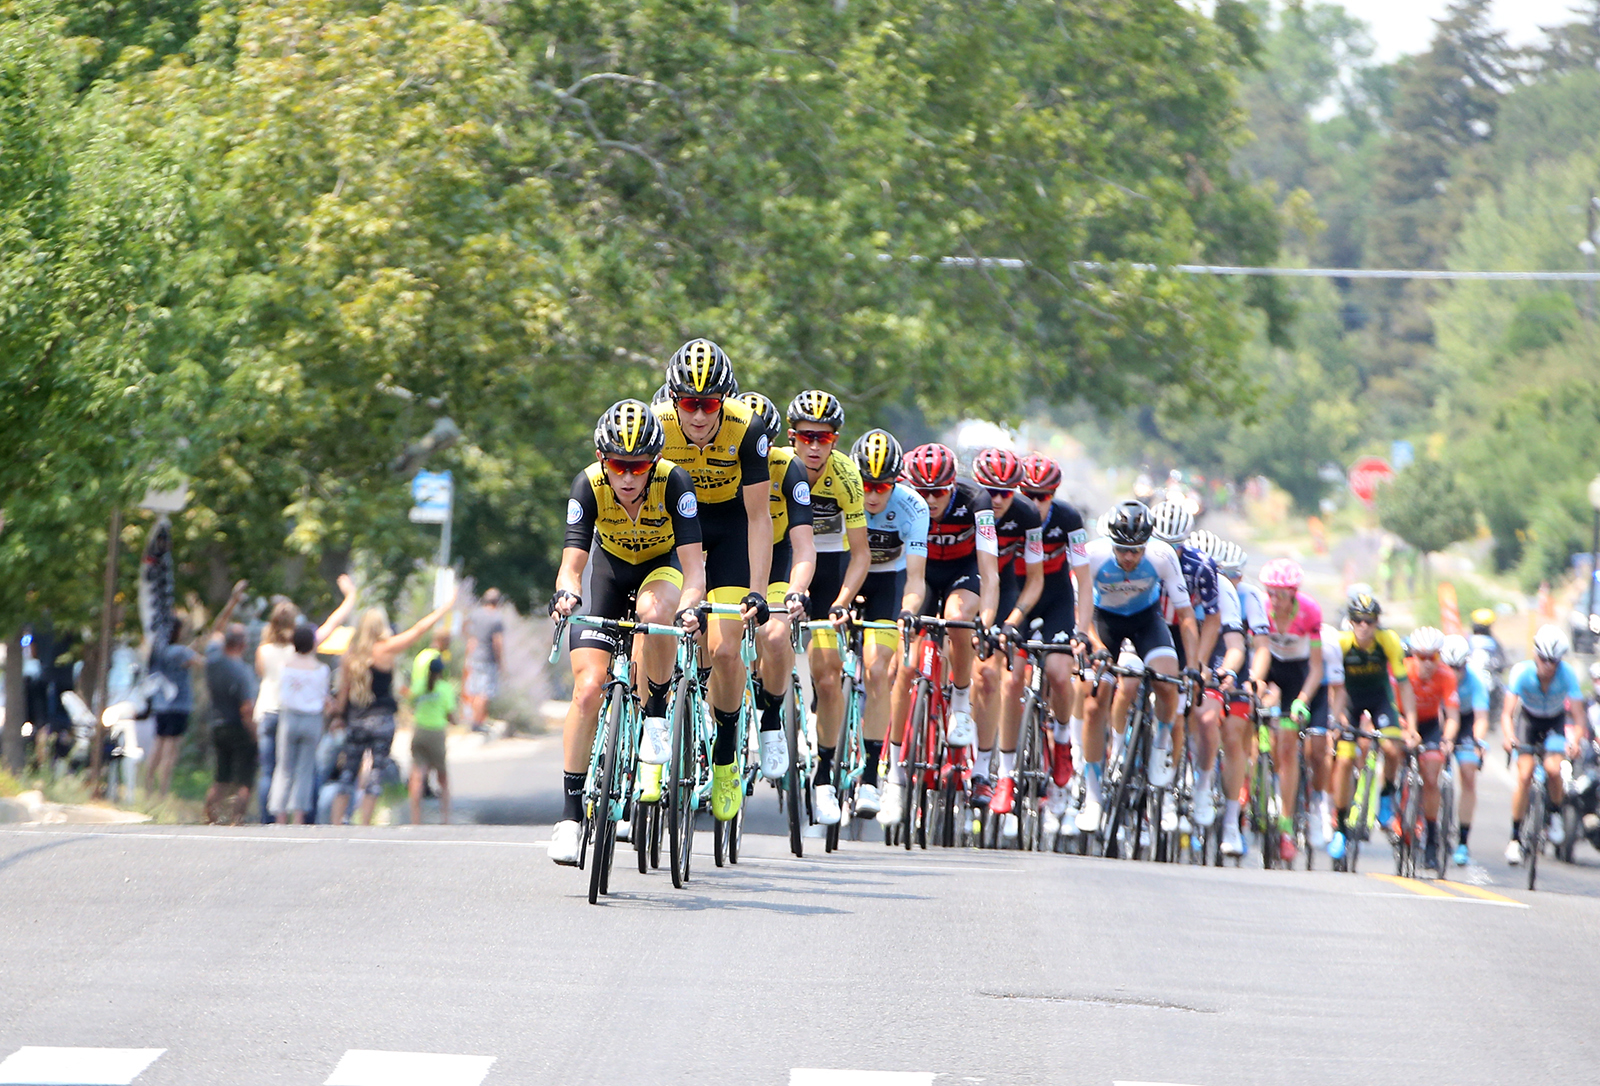 LottoNL Jumbo controlled the front most of the race. 2018 Tour of Utah Stage 4, August 8, 2018, Salt Lake City, Utah. Photo by Cathy Fegan-Kim, cottonsoxphotography.net